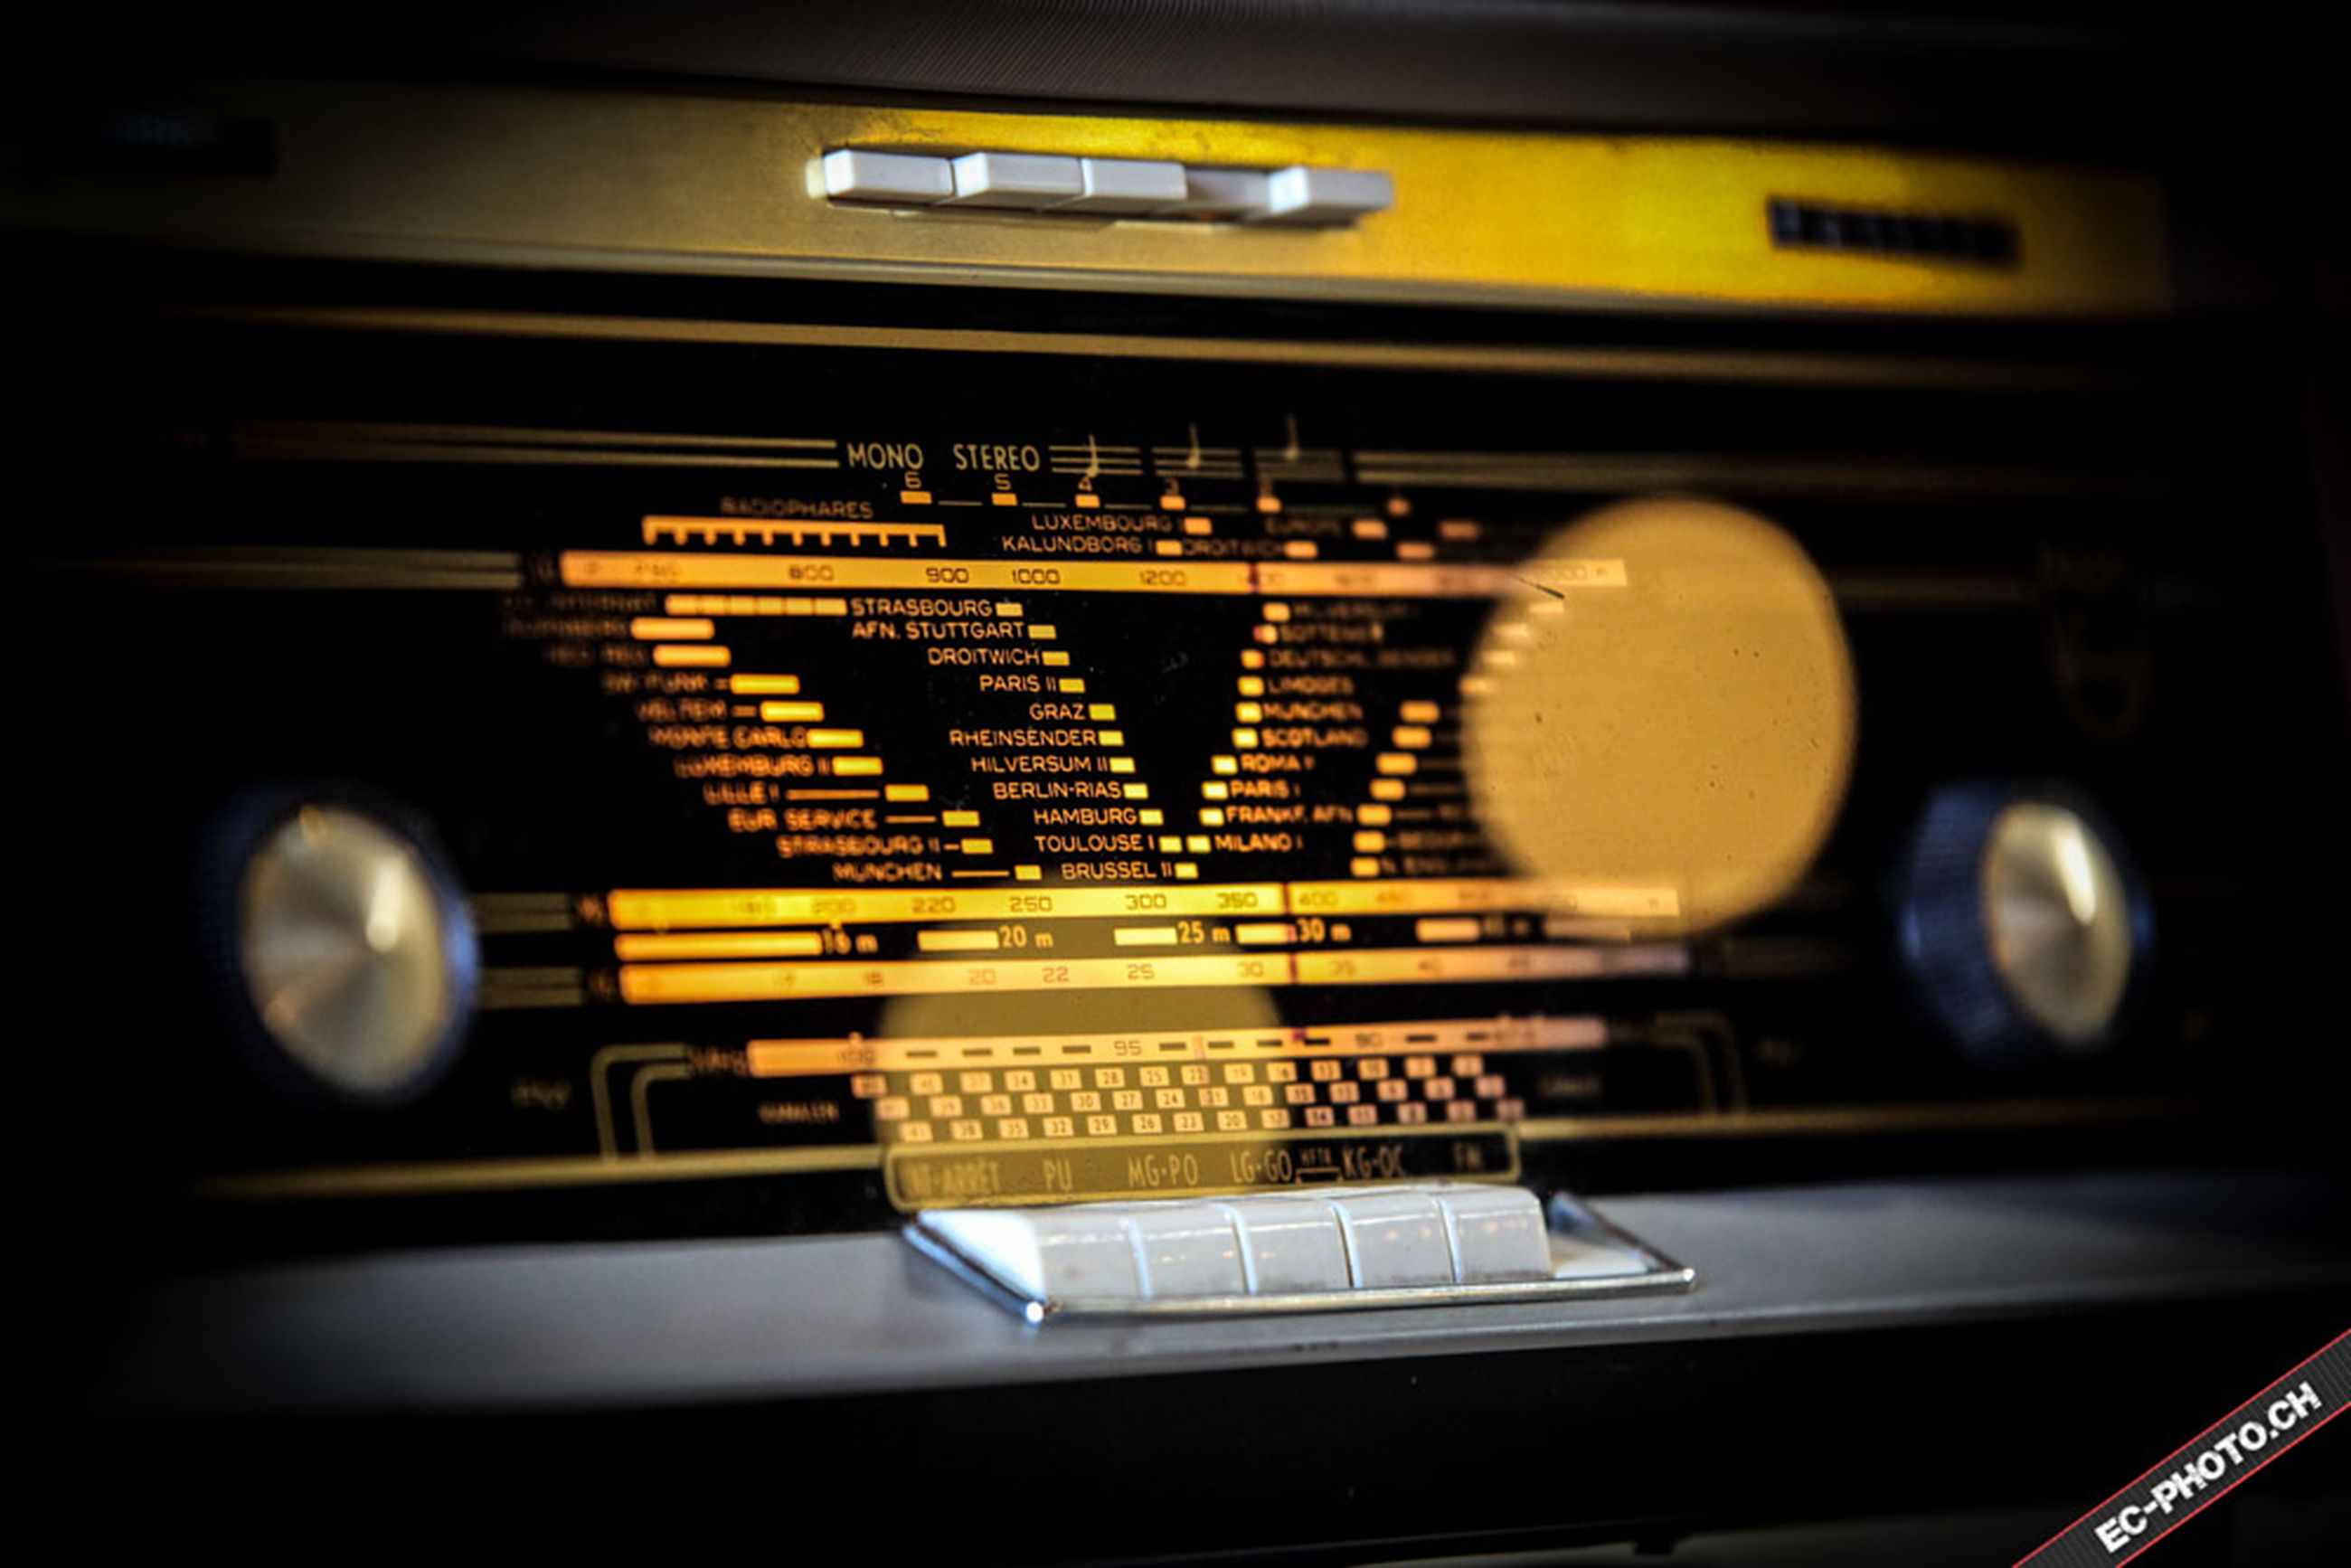 transportation, car, communication, text, land vehicle, western script, mode of transport, technology, indoors, close-up, number, speedometer, no people, control, car interior, illuminated, old-fashioned, yellow, dashboard, retro styled